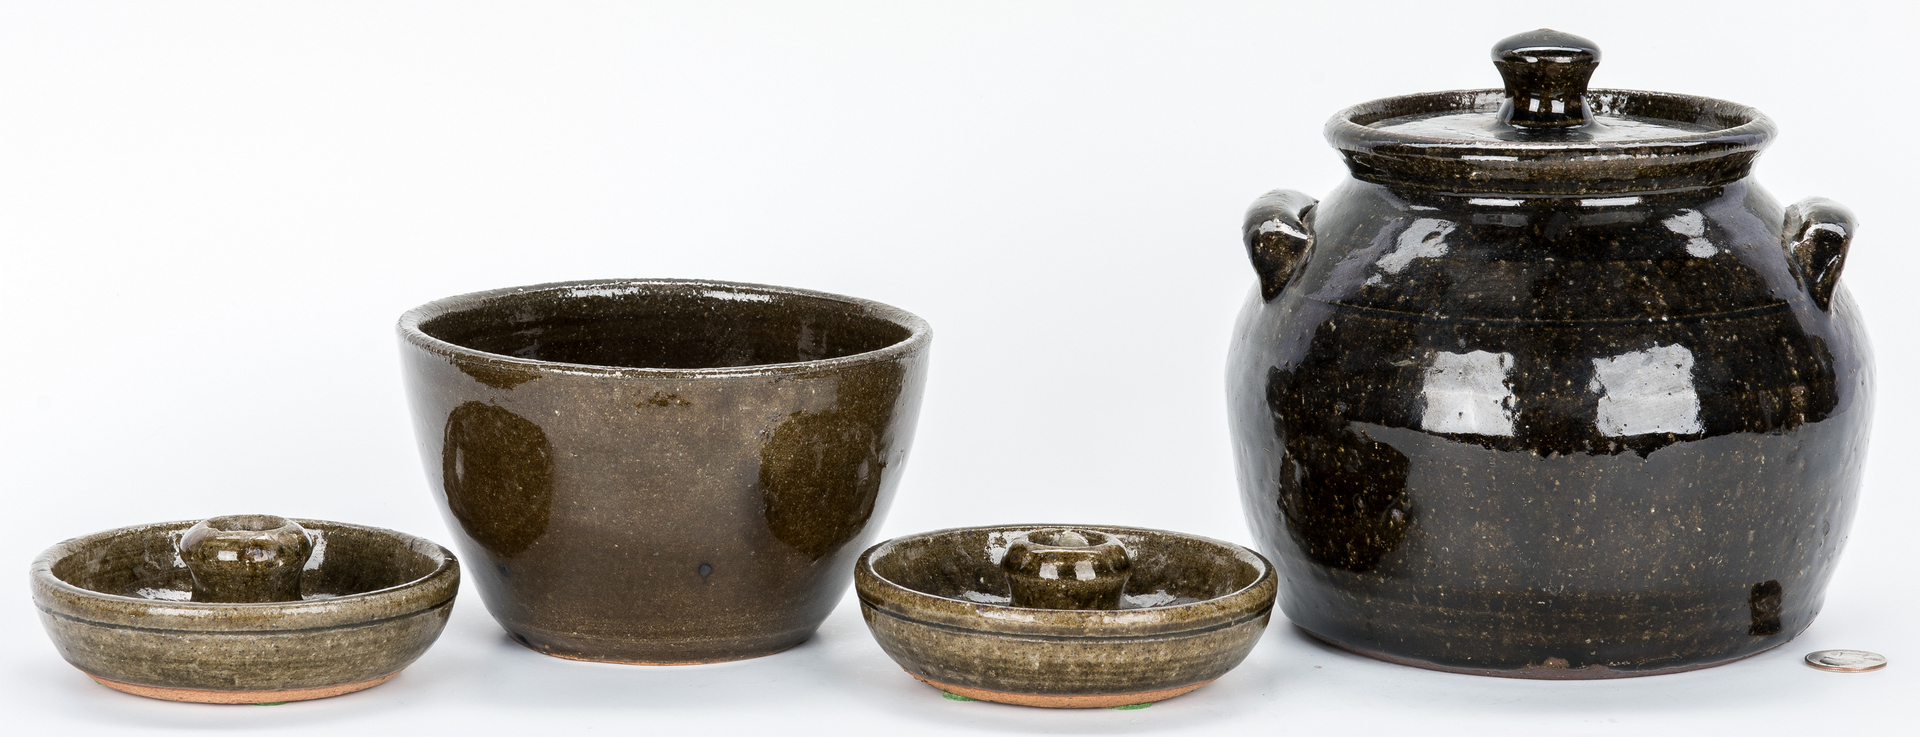 Lot 393: 4 Pcs. Lanier Meaders & Arie Meaders Pottery